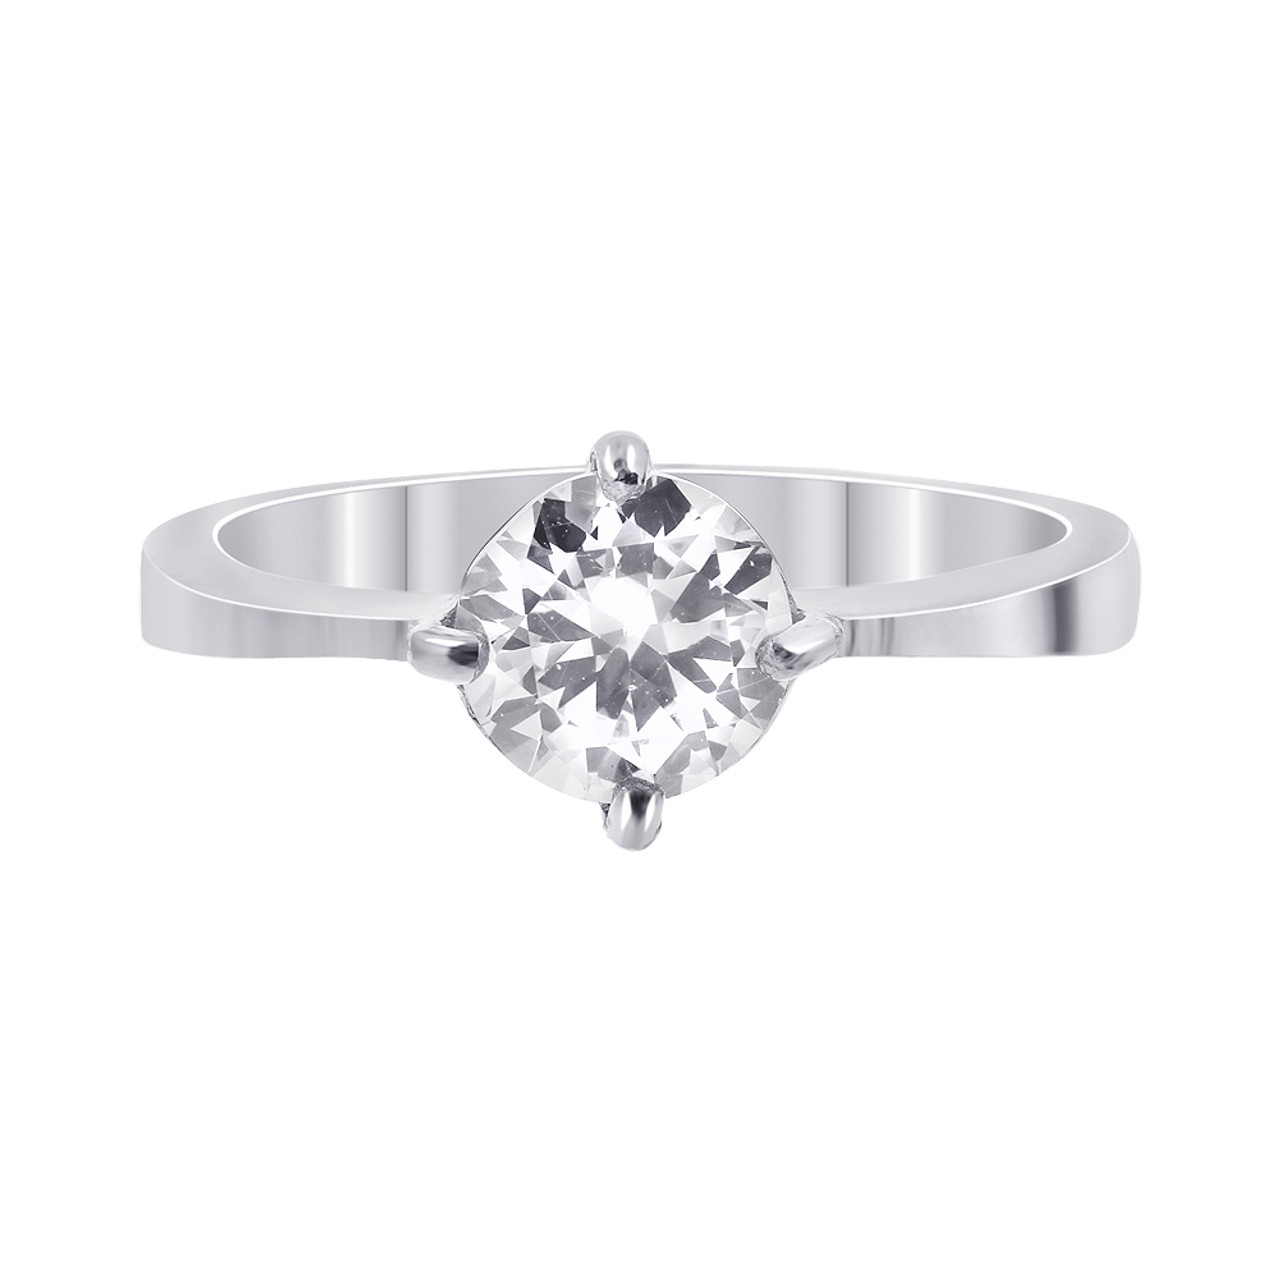 Stainless Steel Round Clear CZ Solitaire Ring